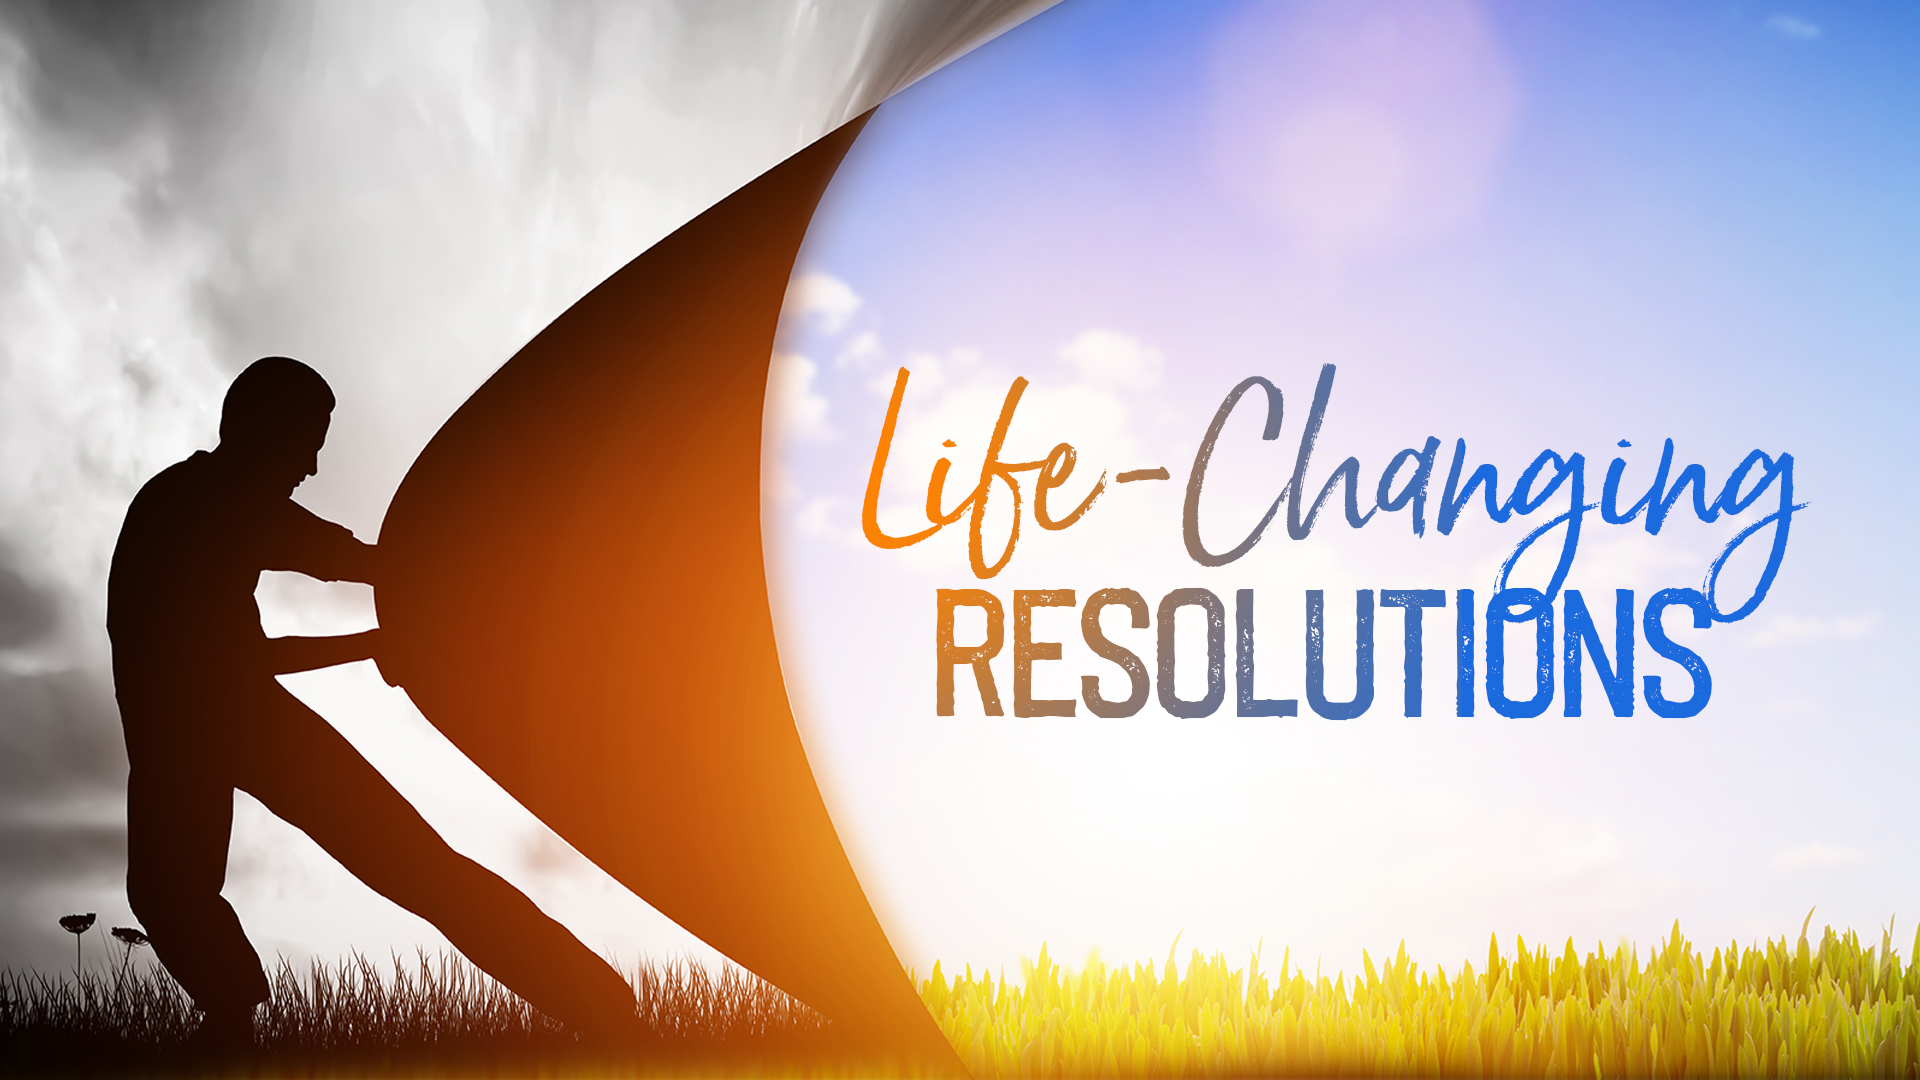 Life-Changing Resolutions